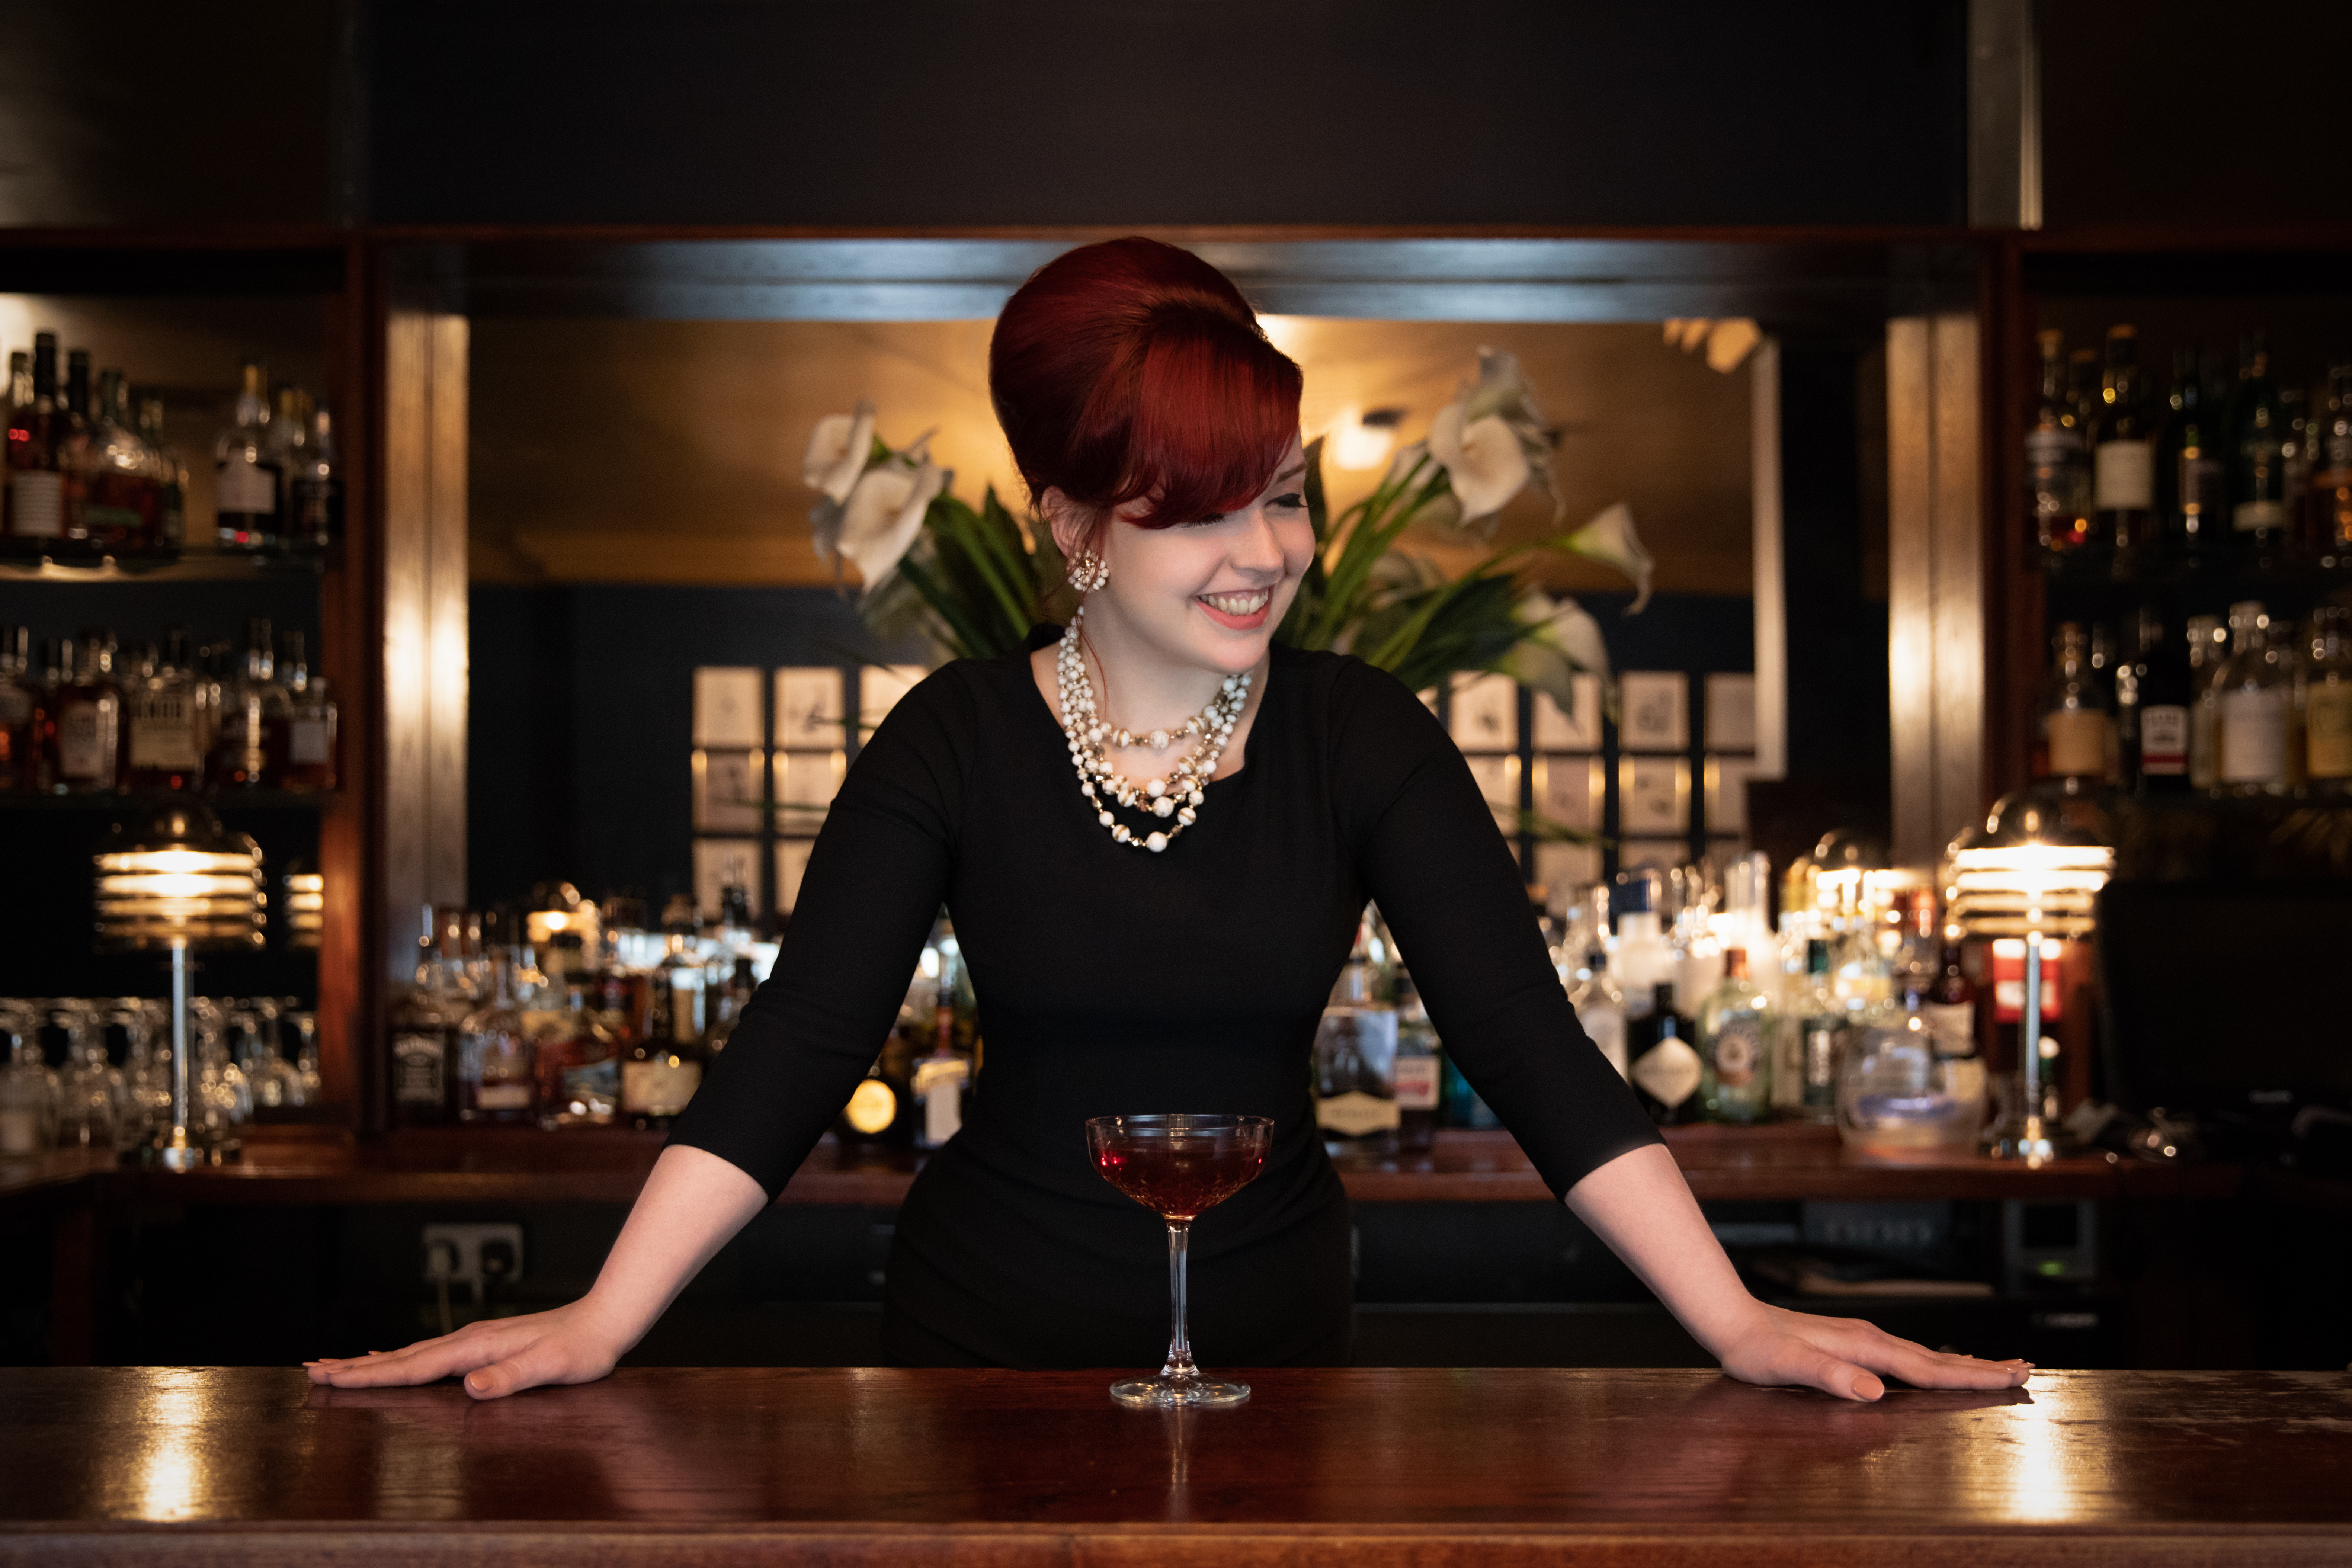 Drinks with Ruby Fontaine (Cocktail bar owner)